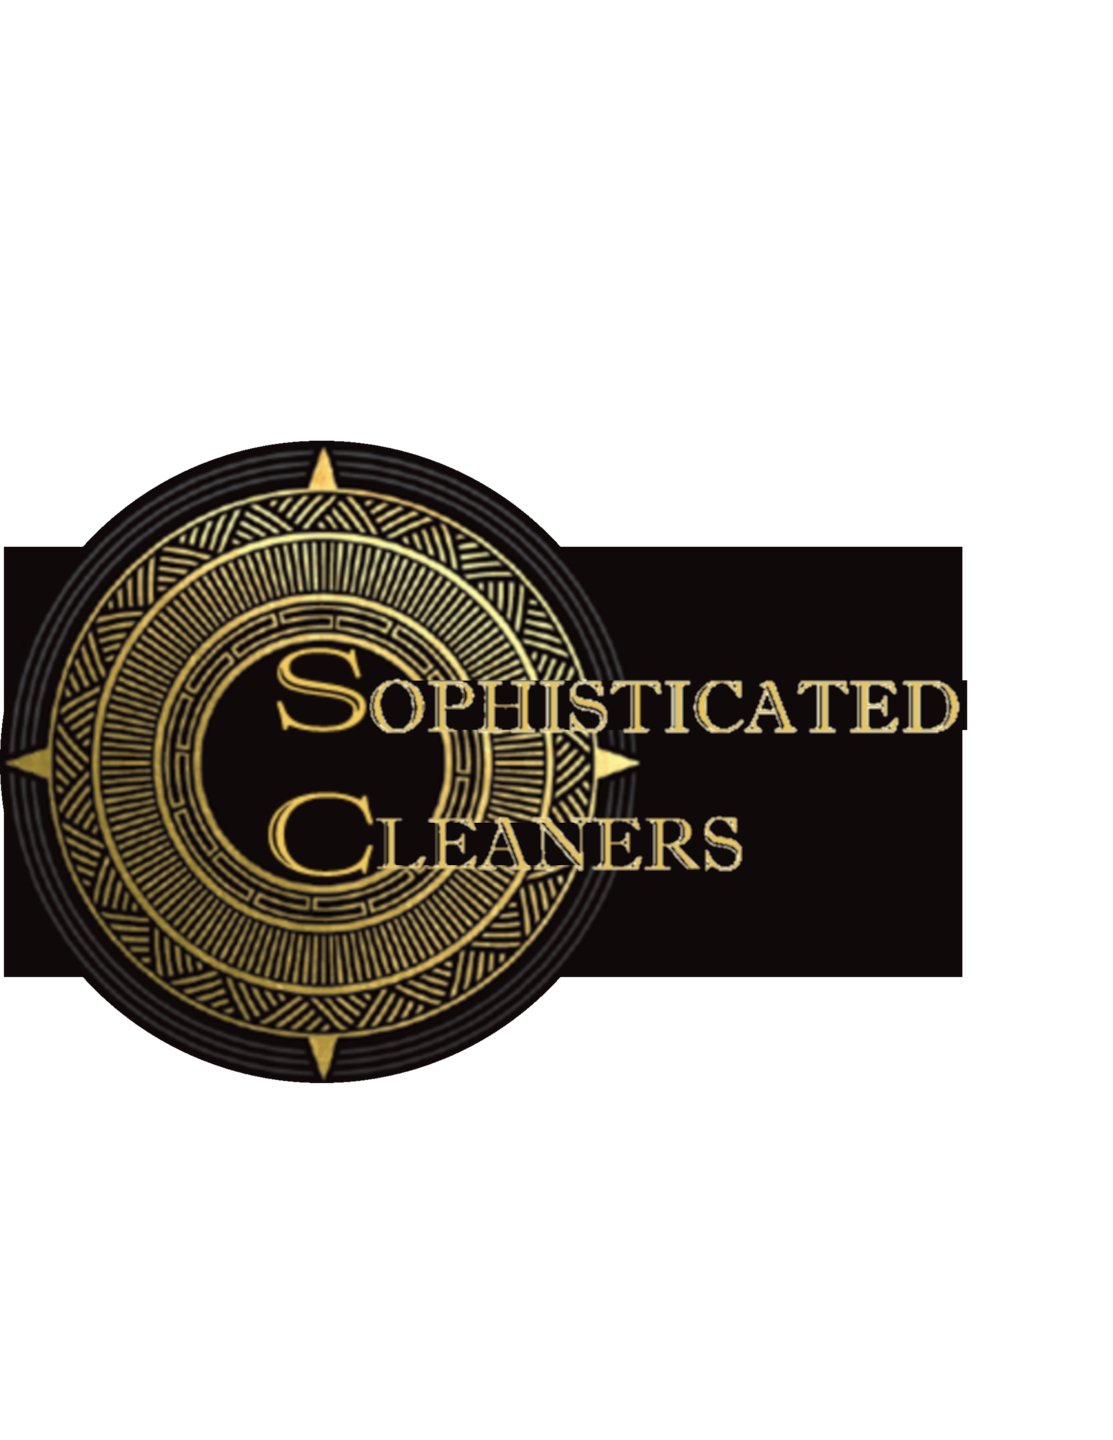 Sophisticated Cleaners logo